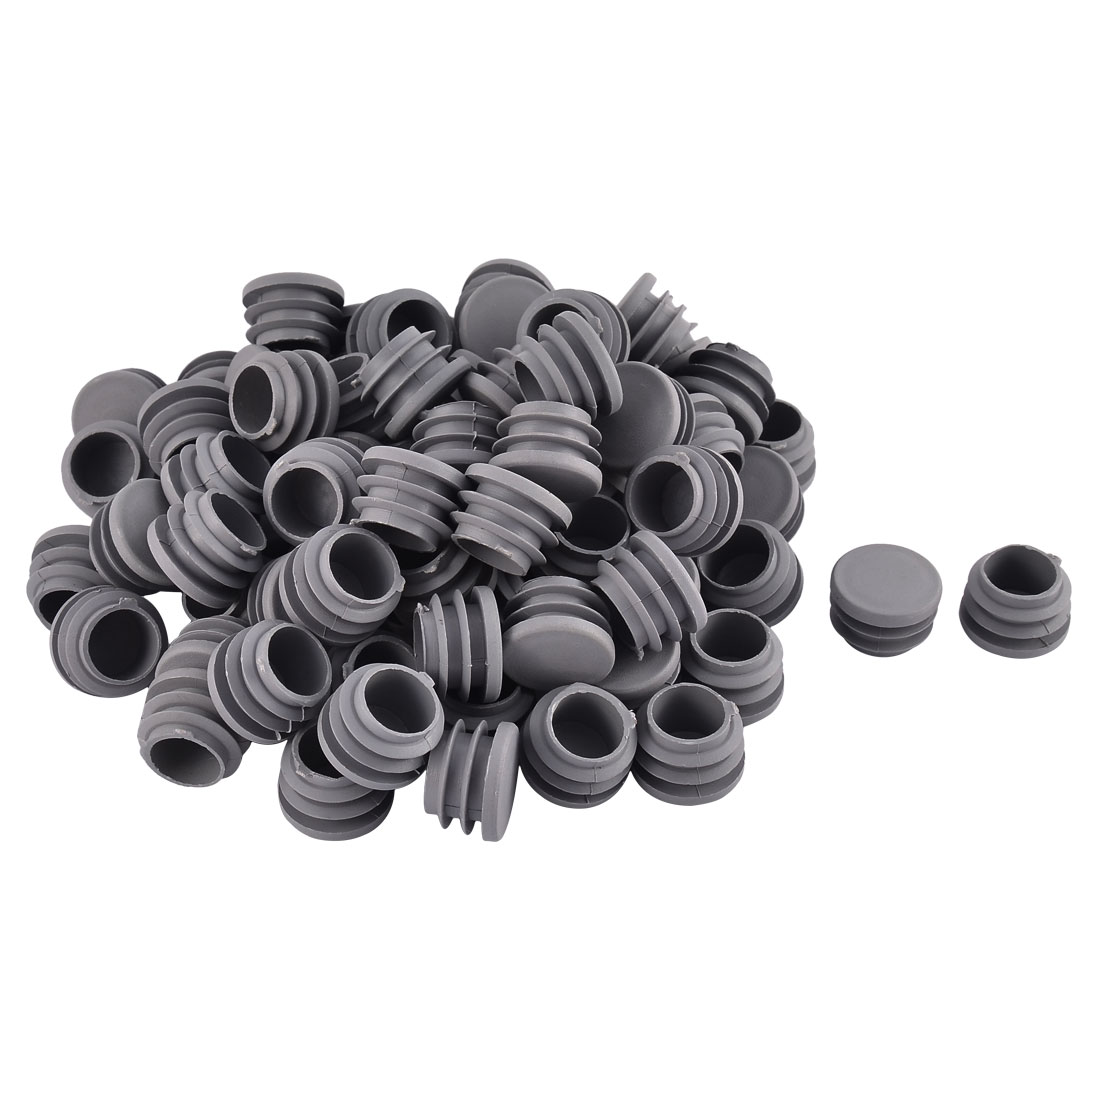 Furniture Table Chair Plastic Round Tube Pipe Insert Cap Cover Protector Gray 25mm Dia 80pcs